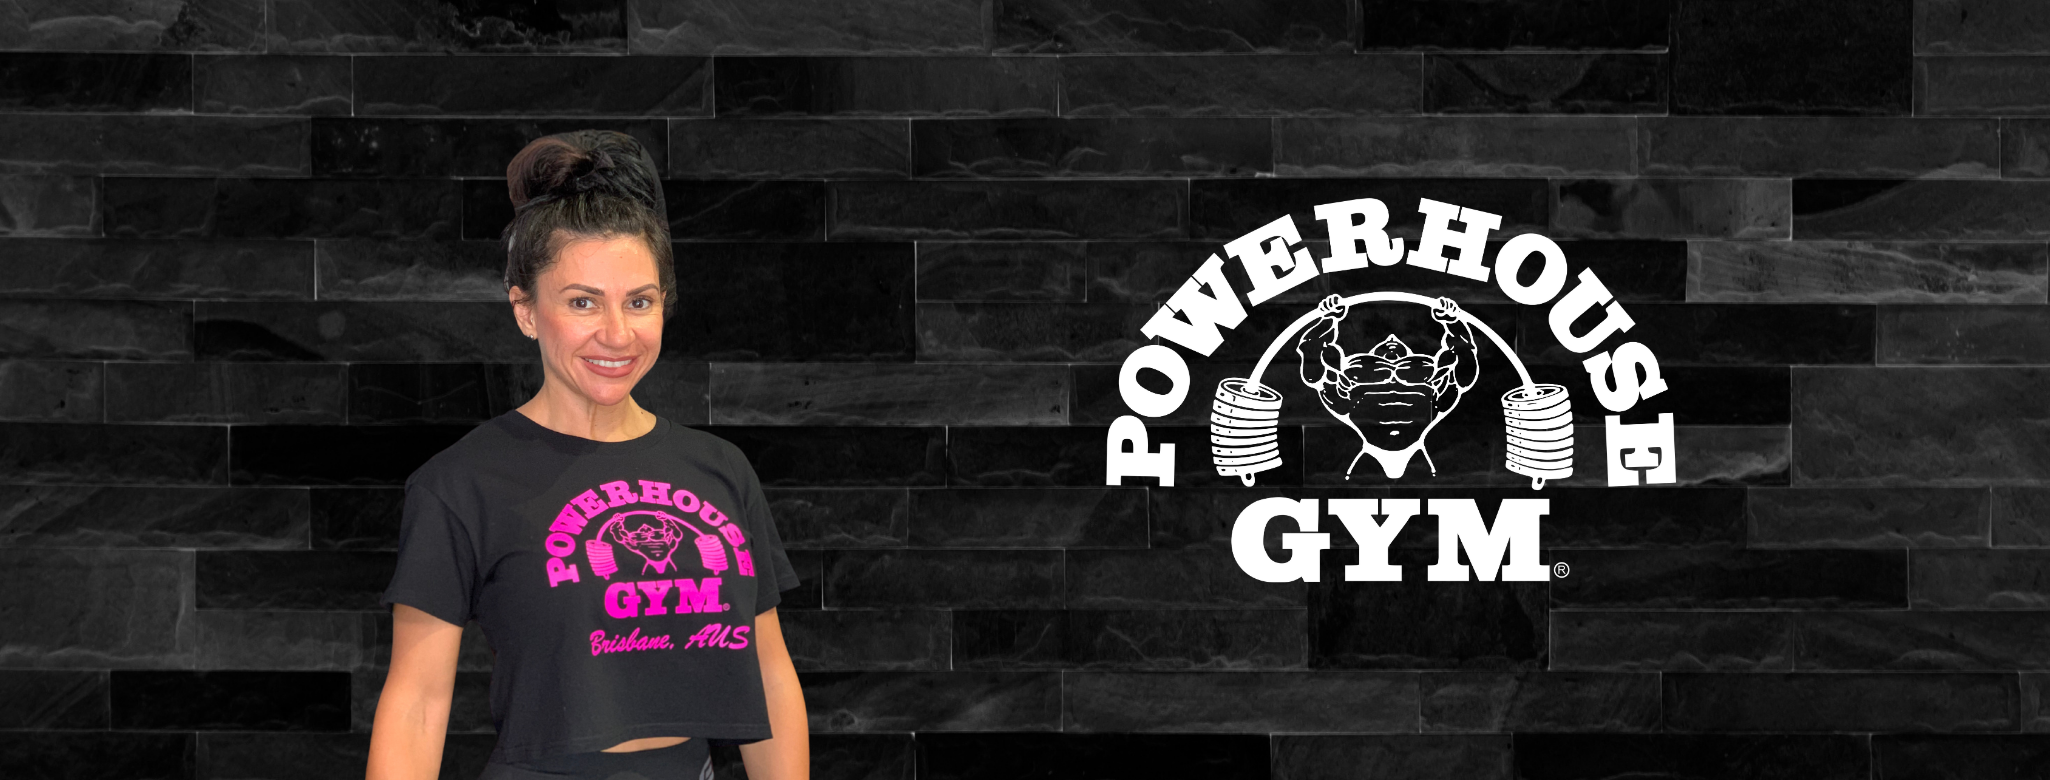 An Image of the Southside, Queensland, Australia Powerhouse Gym Location